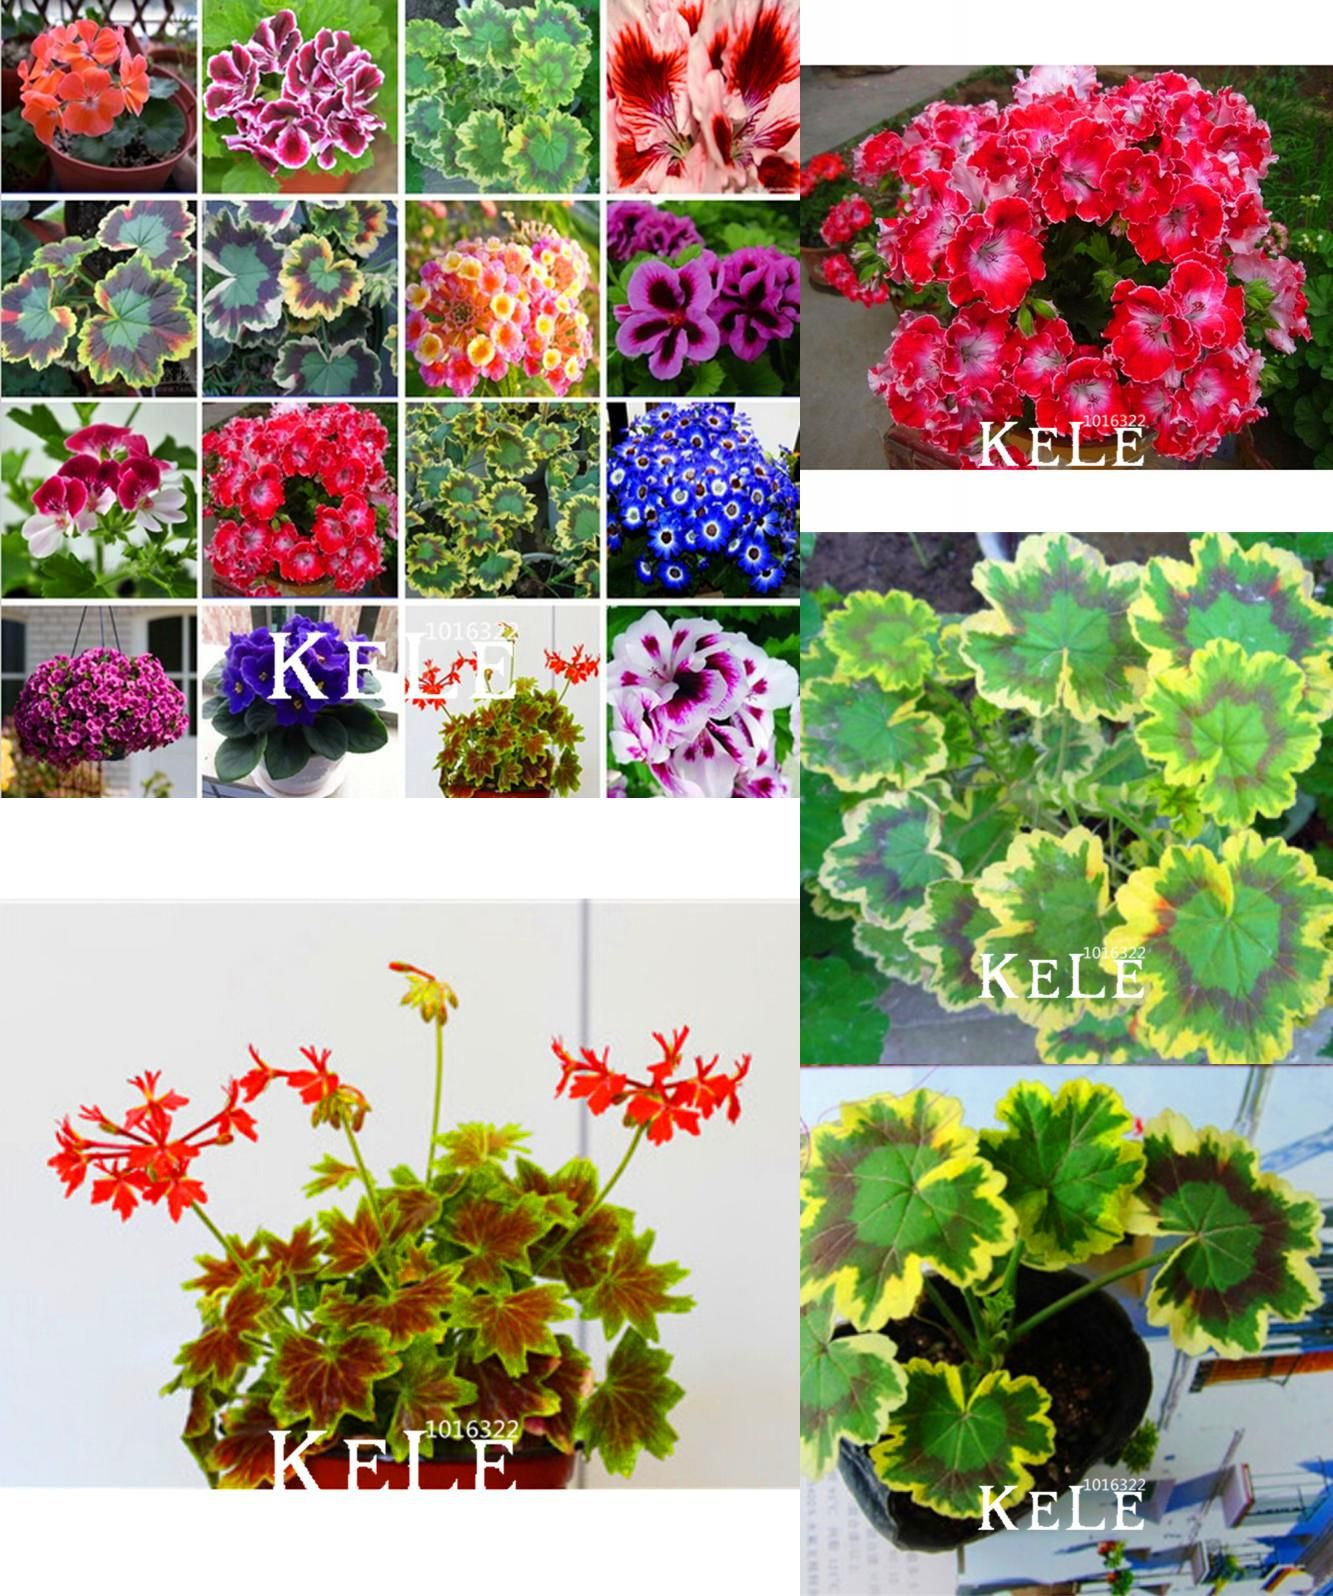 Visit to buy loss promotionhot sale purple univalve geranium seeds cheap seeds for sale buy quality seeds perennial directly from china seeds pelargonium suppliers loss promotionhot sale purple univalve geranium seeds izmirmasajfo